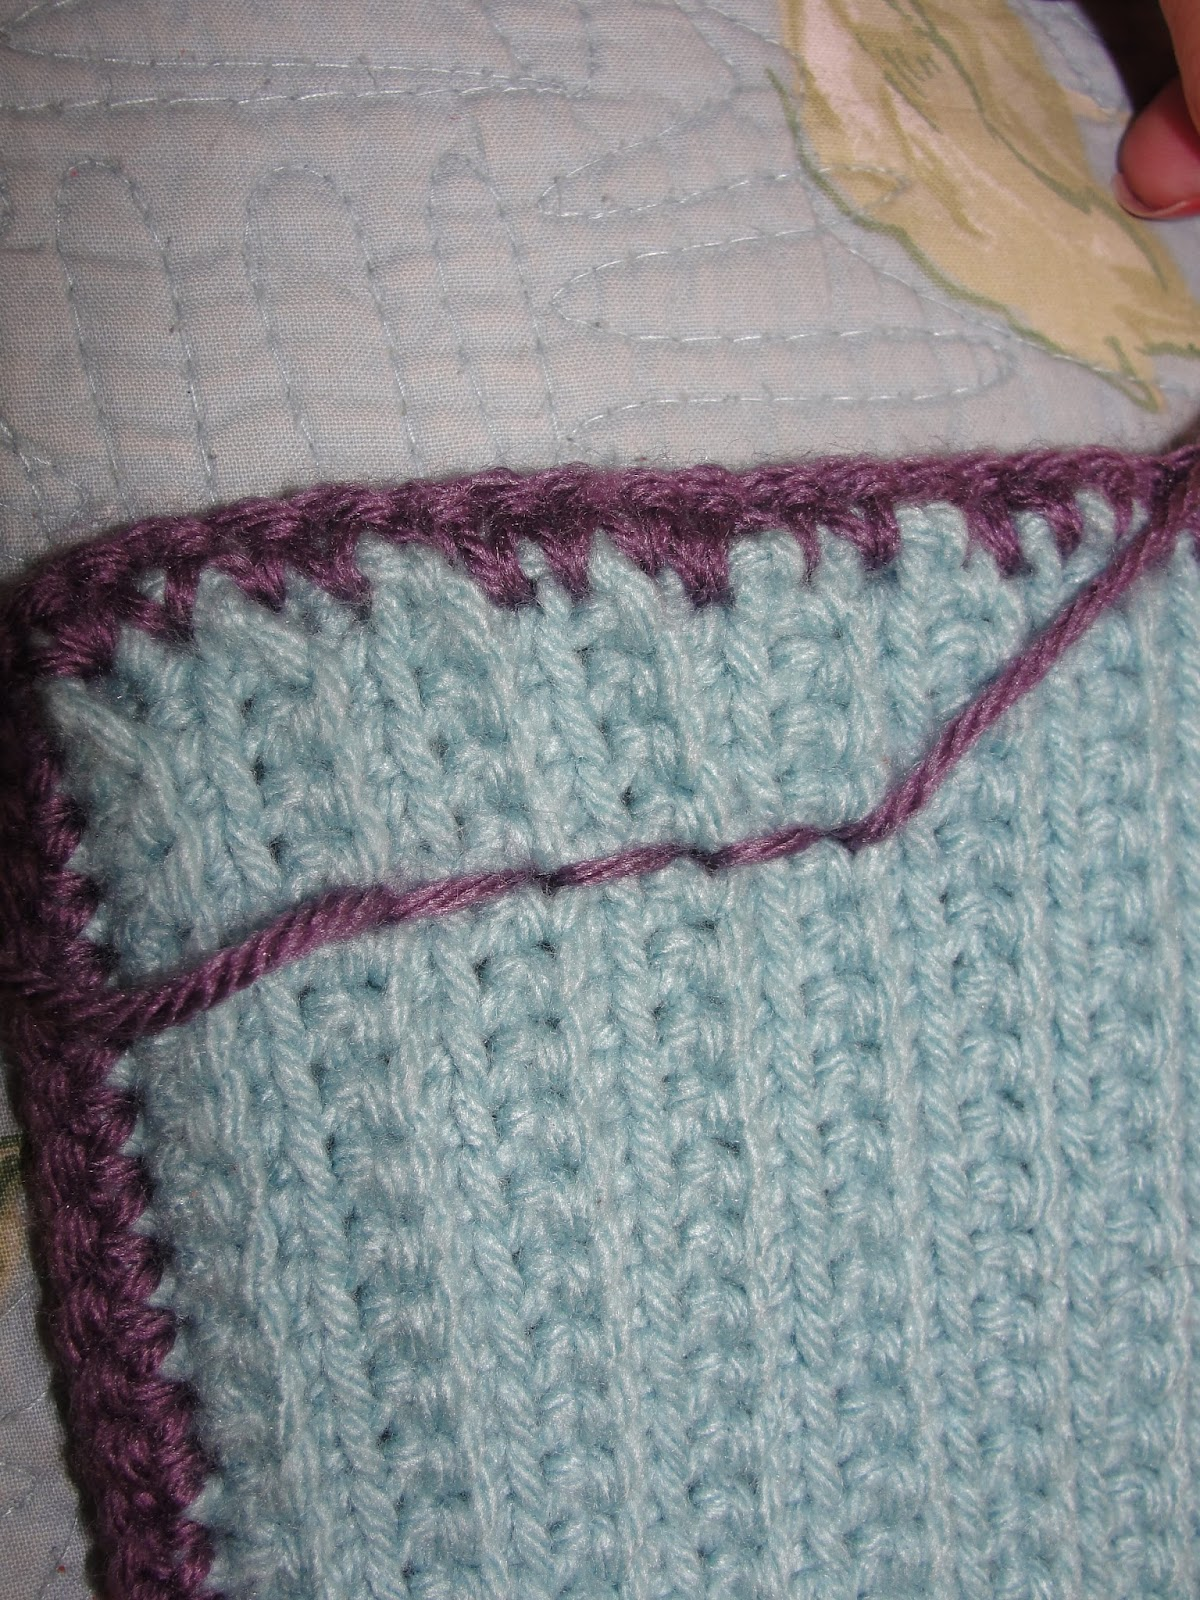 Slot stitch crochet